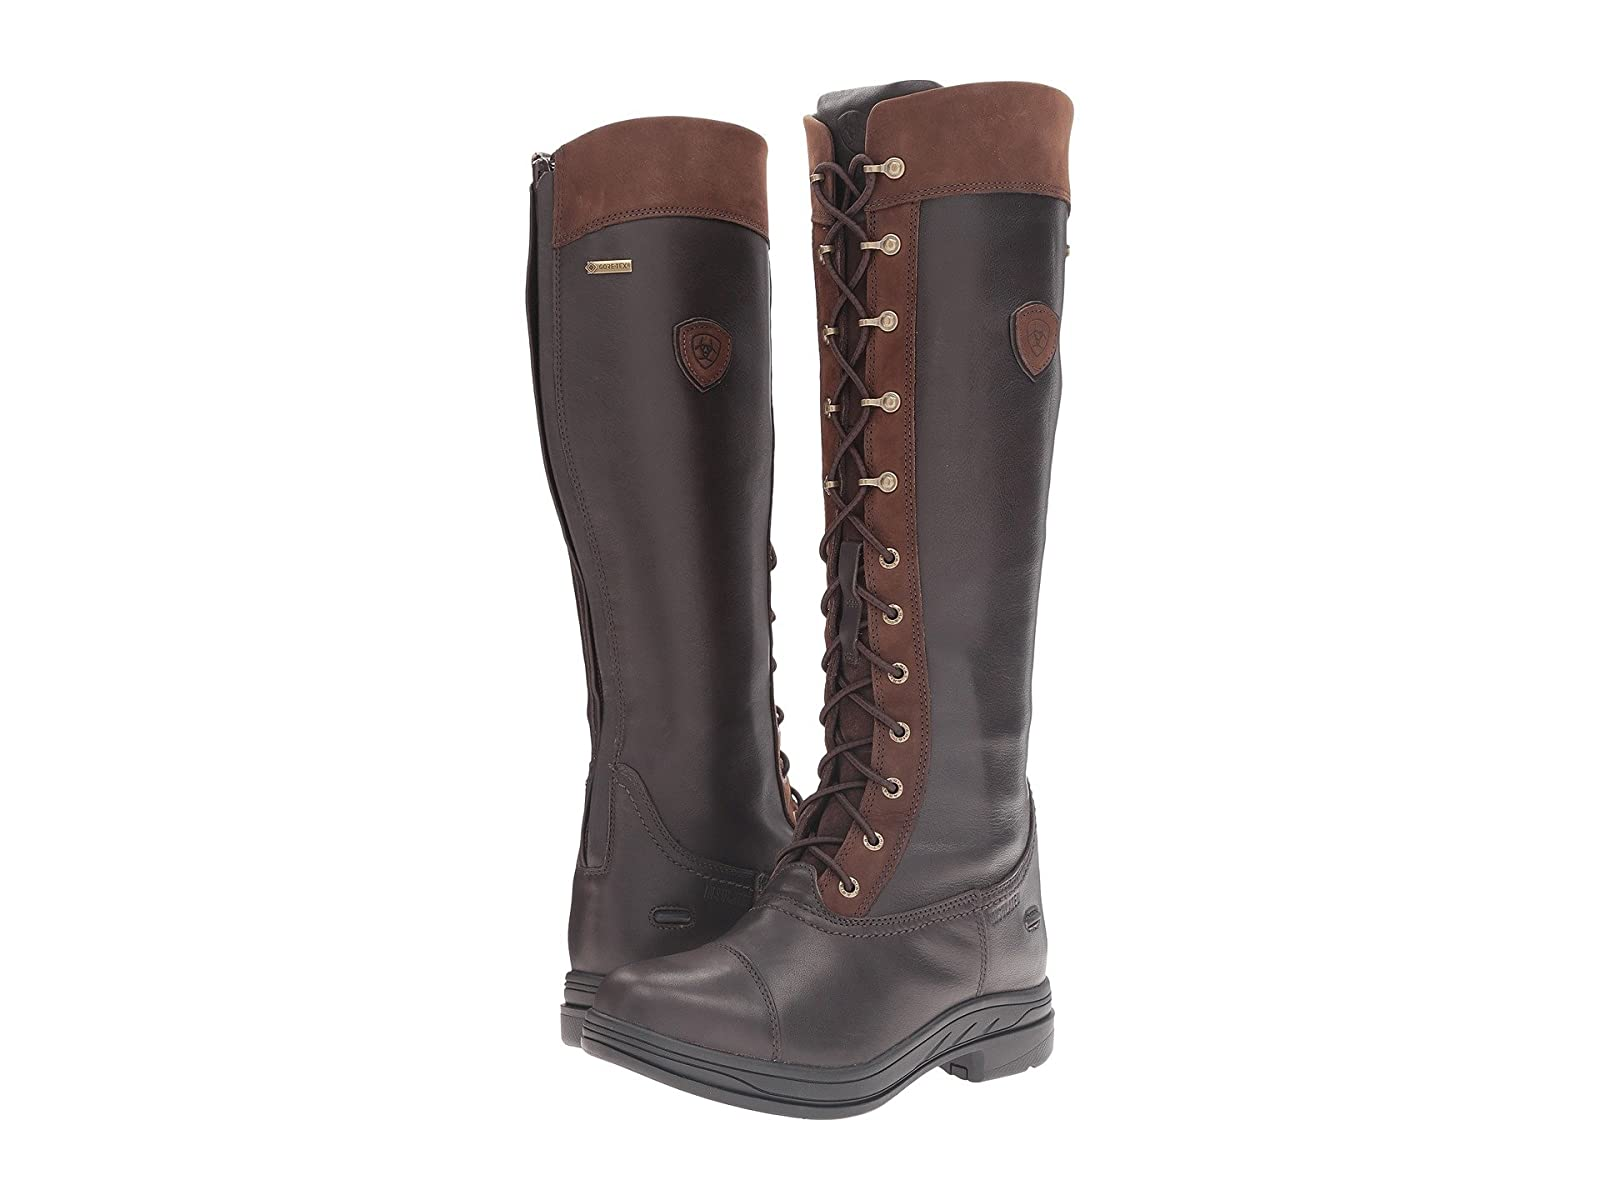 Ariat Coniston Pro GTX InsulatedSelling fashionable and eye-catching shoes